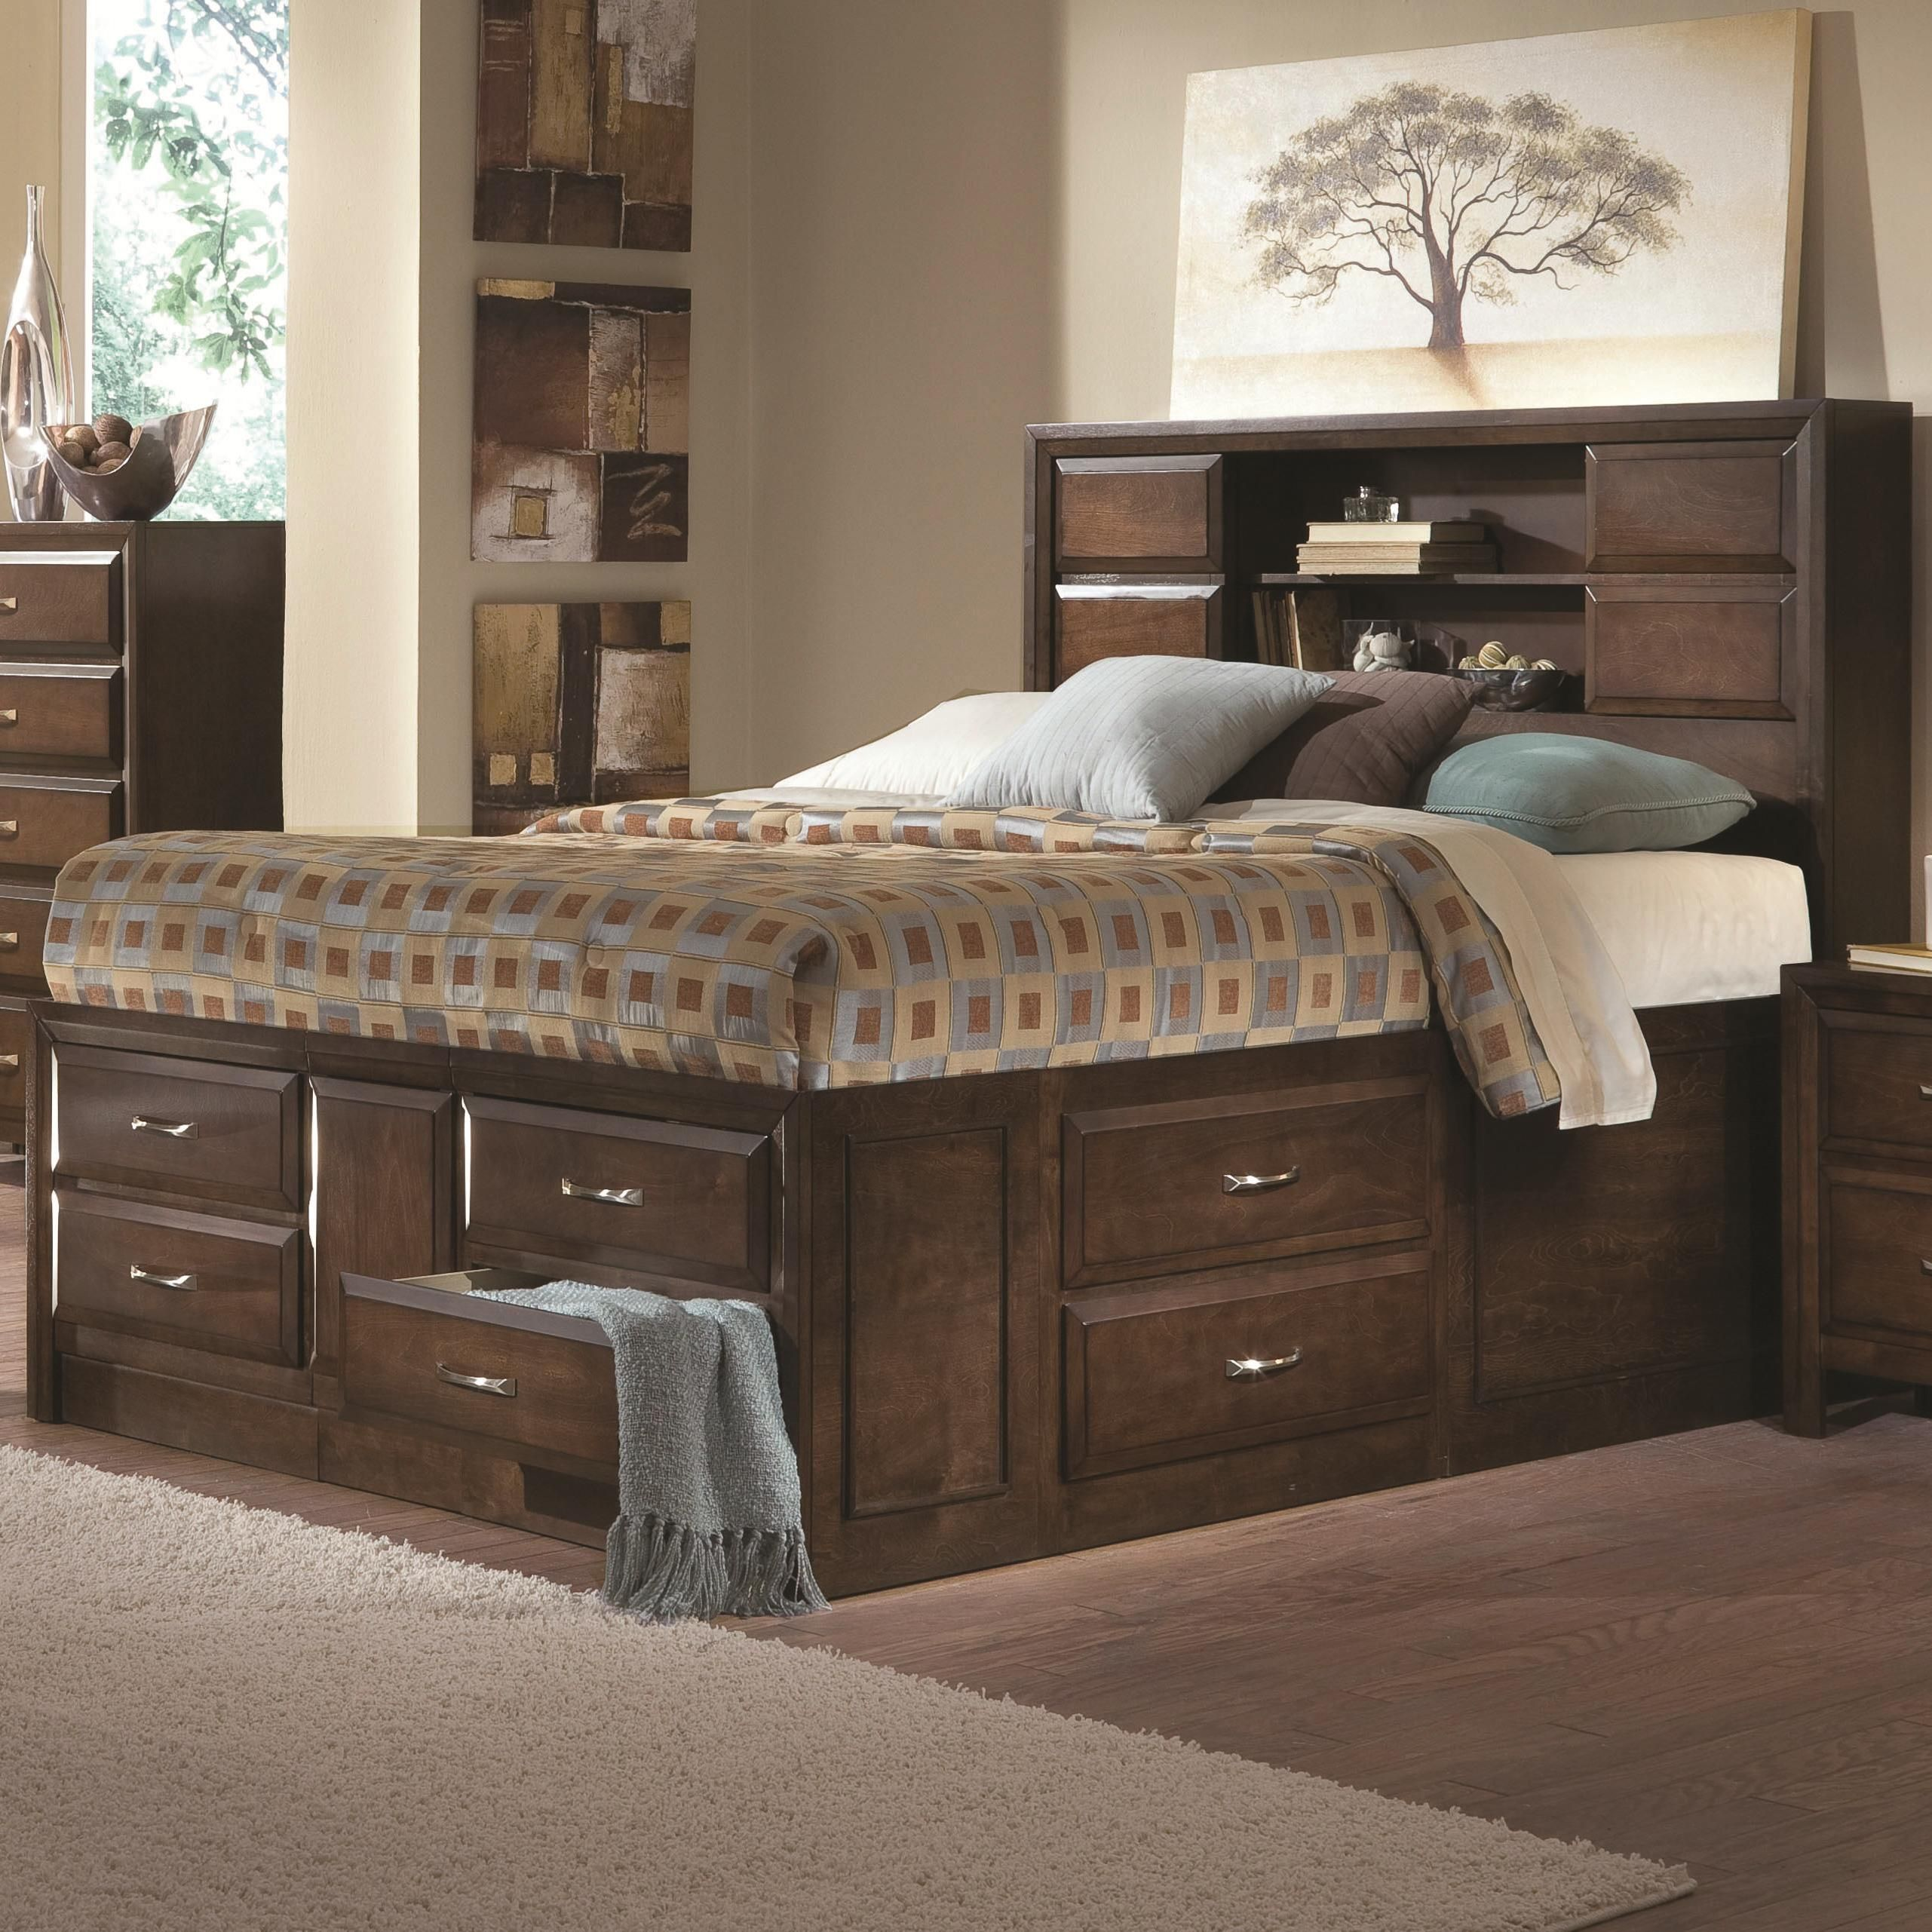 remarkable girls home lingerie samuel fortune check from drawers diva bed wells ideas interior as cordova design furniture lawrence with smith bedroom elegant sets ivan